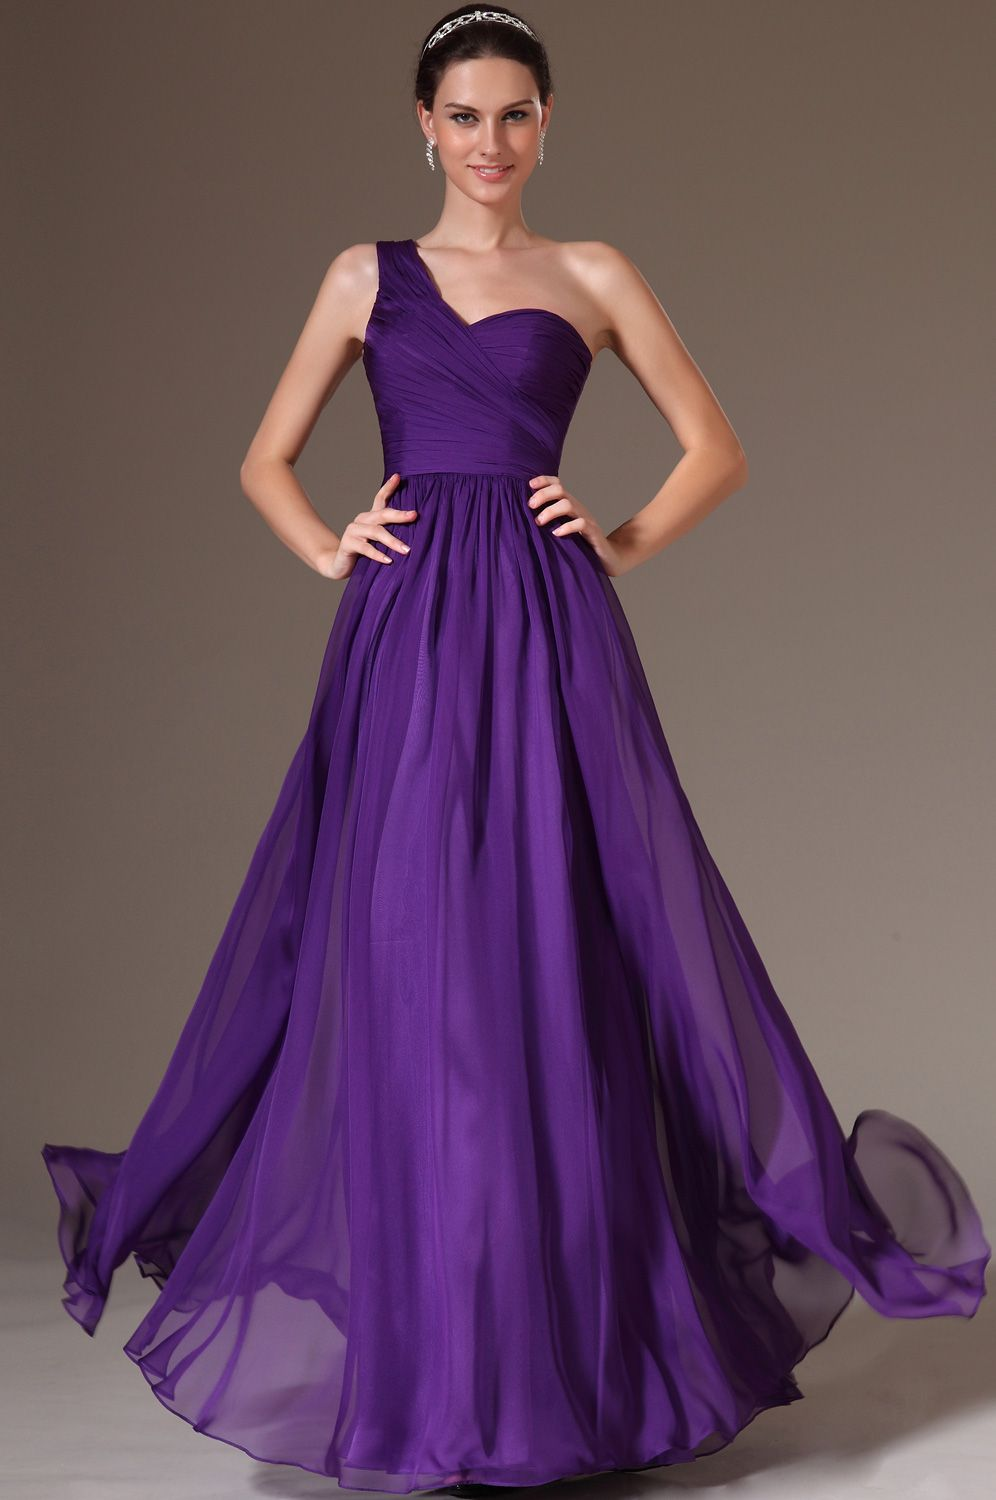 vestido morado | dress | Pinterest | Vestido morado, Vestiditos y Damas